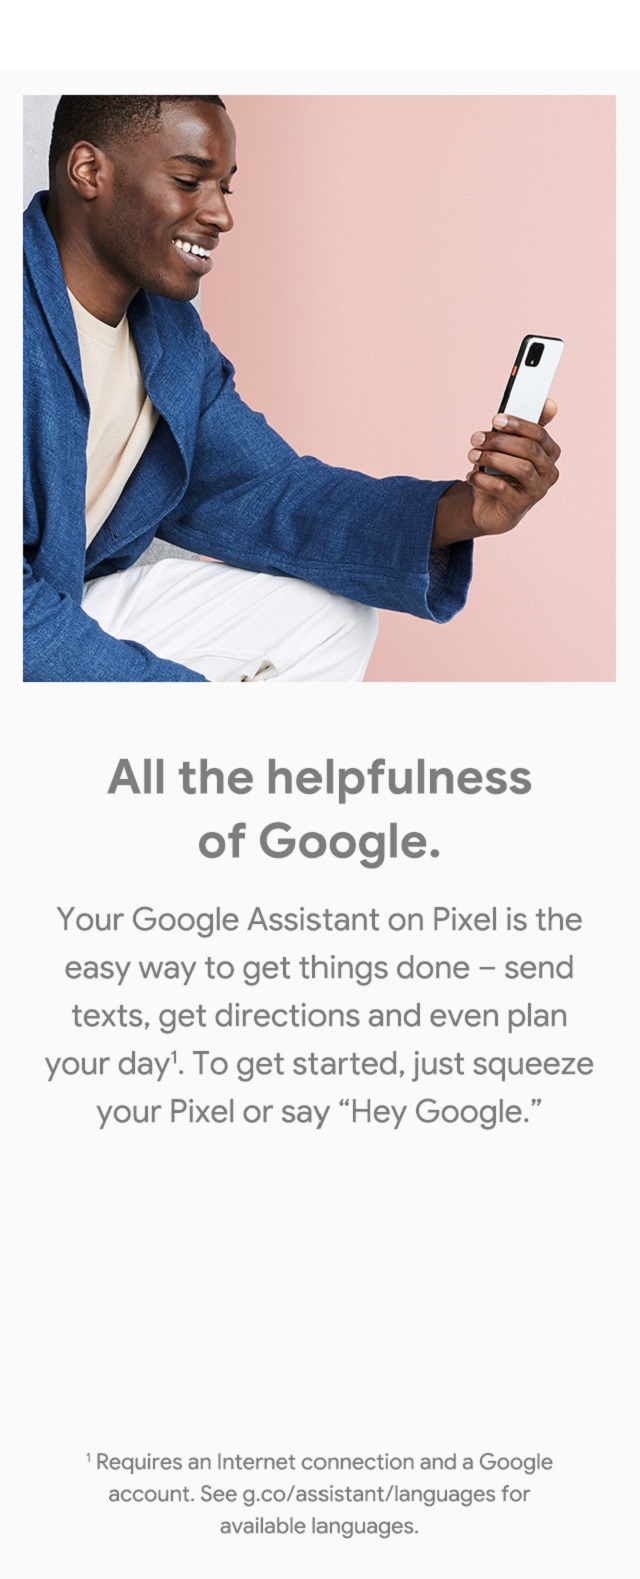 Google Assistant – All the helpfulness of Google